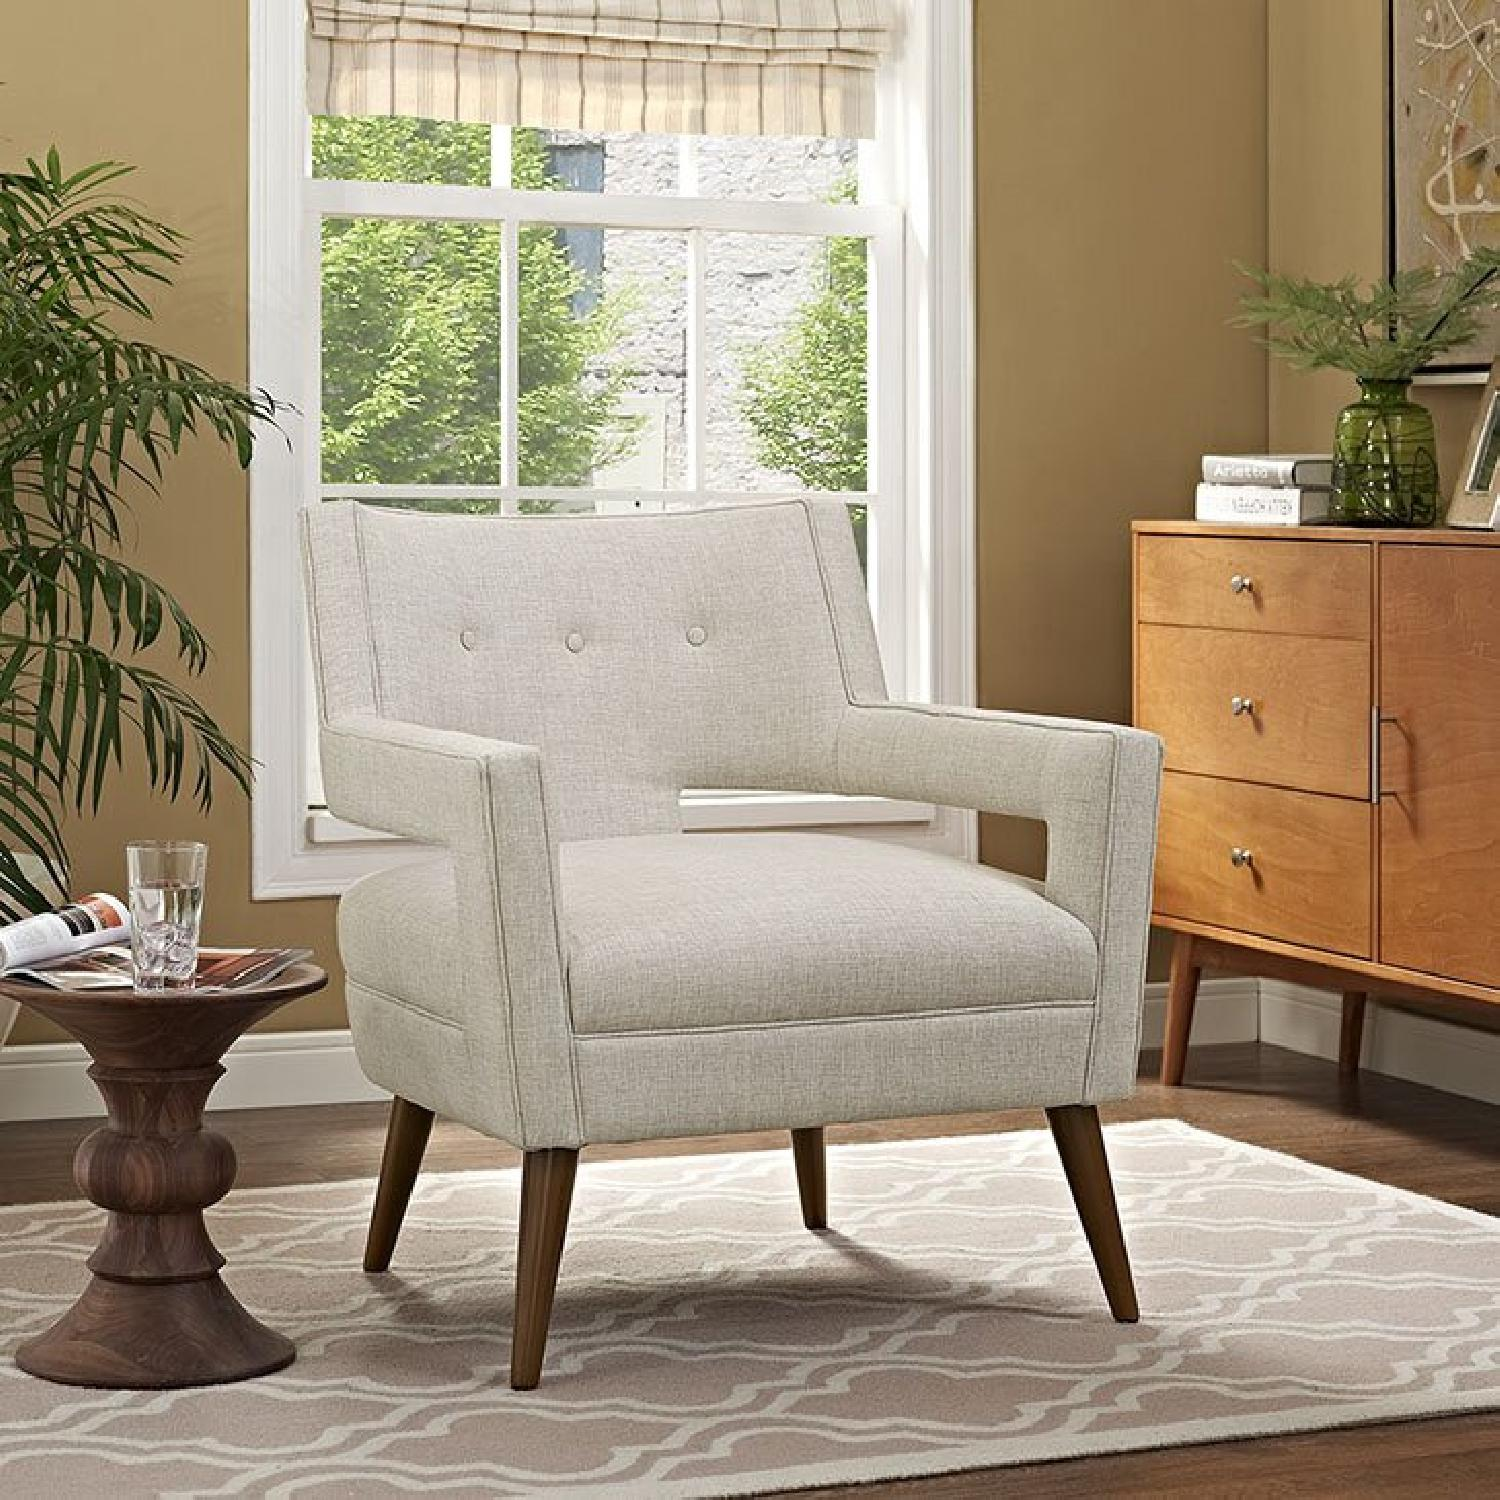 Modway Tufted Armchair - image-6